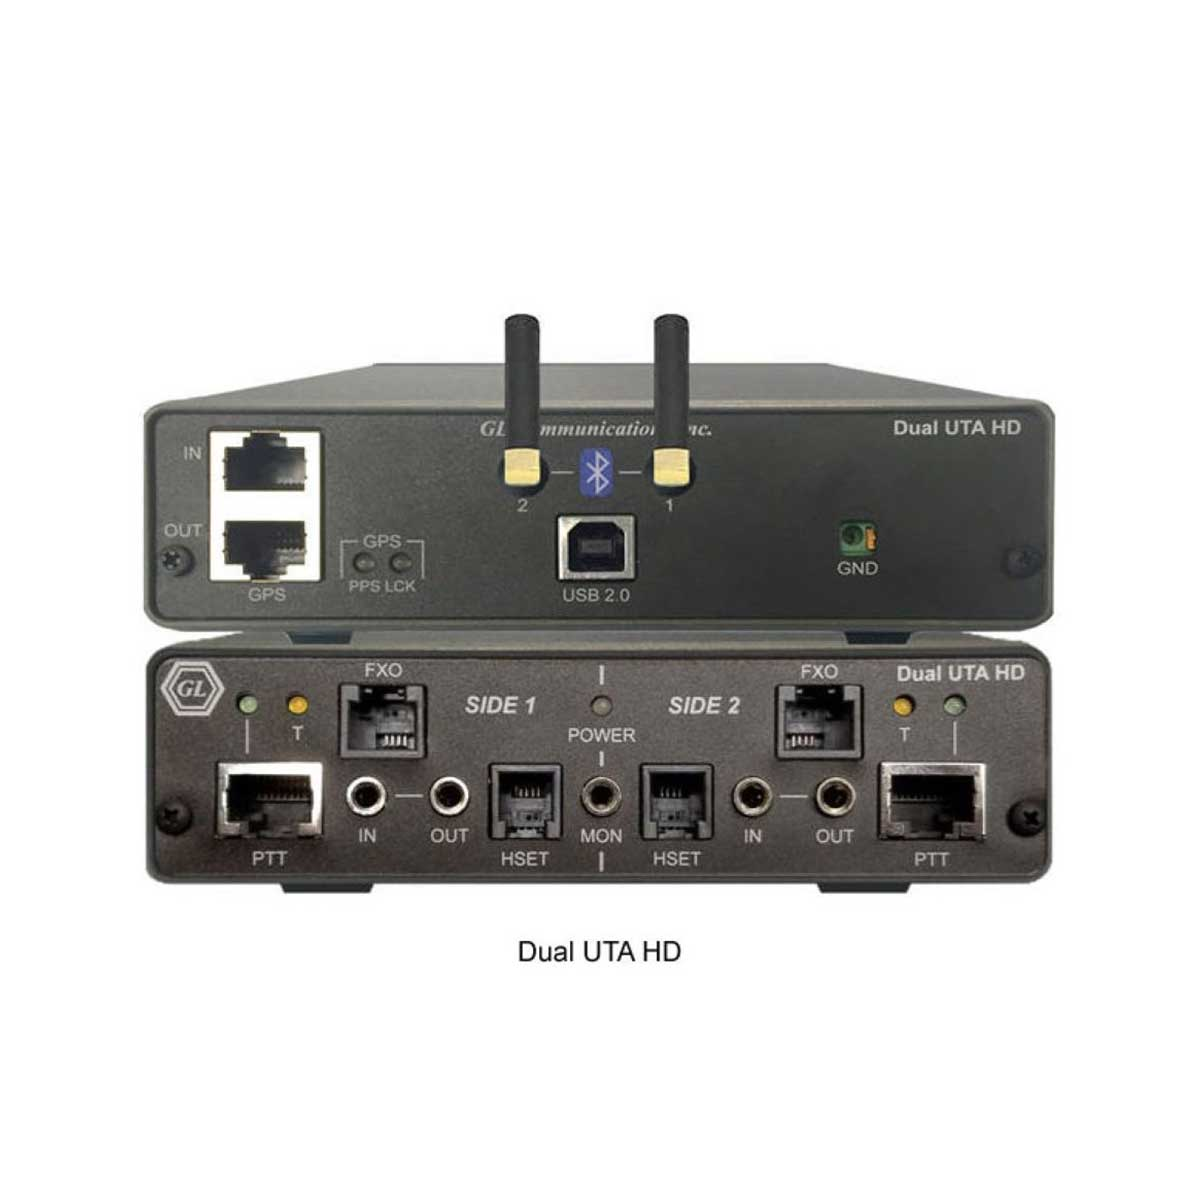 VQuaD Dual UTA HD GL Communications